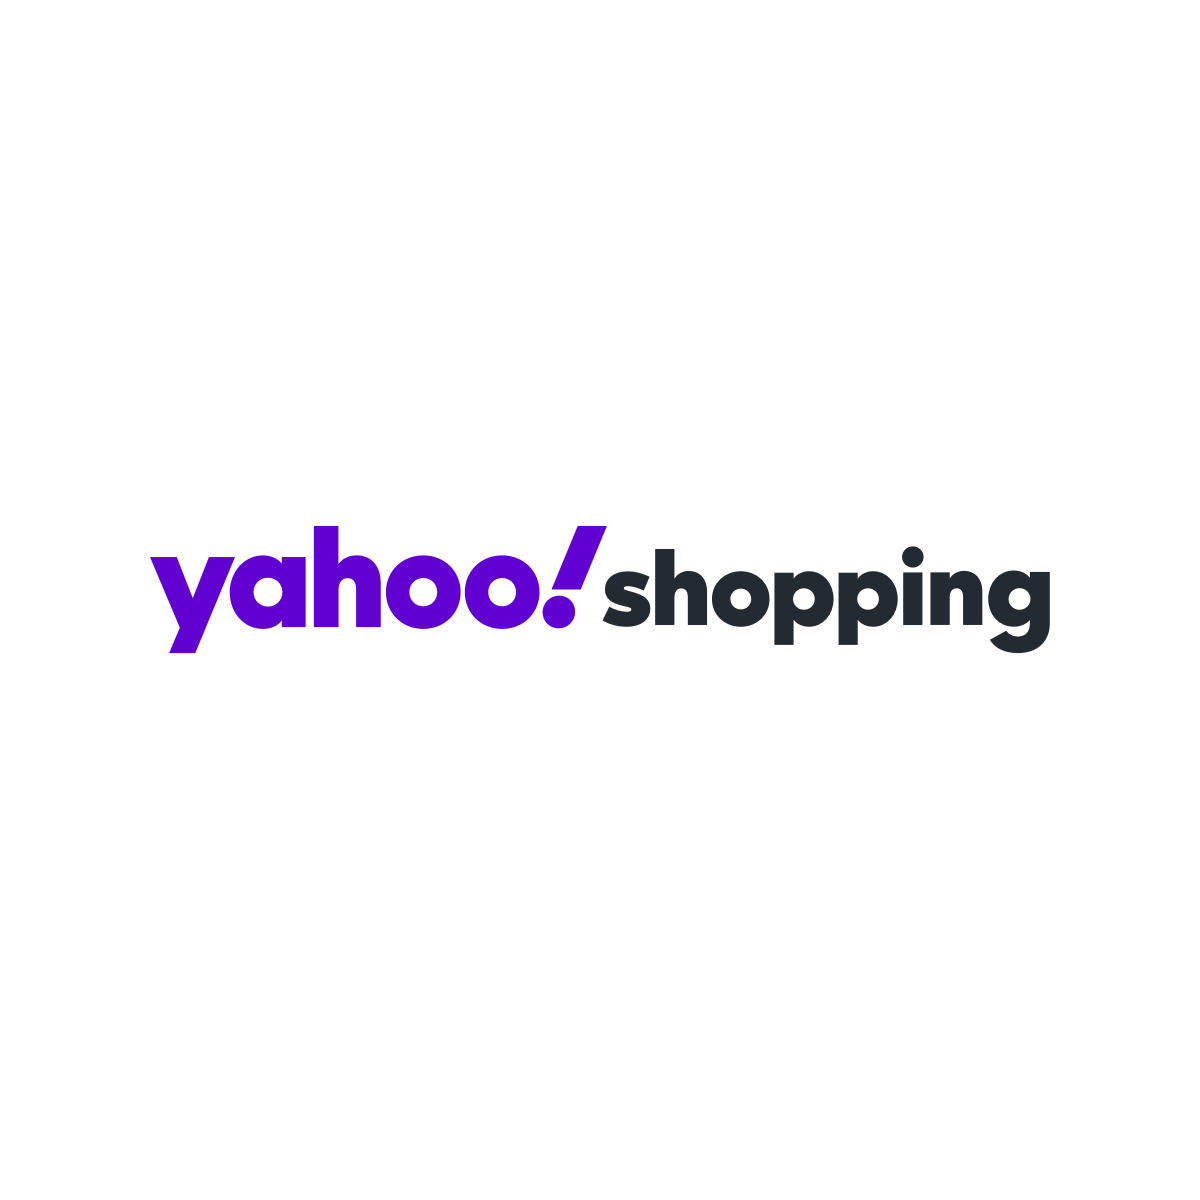 Yahoo Shopping - We'll track the prices for you!